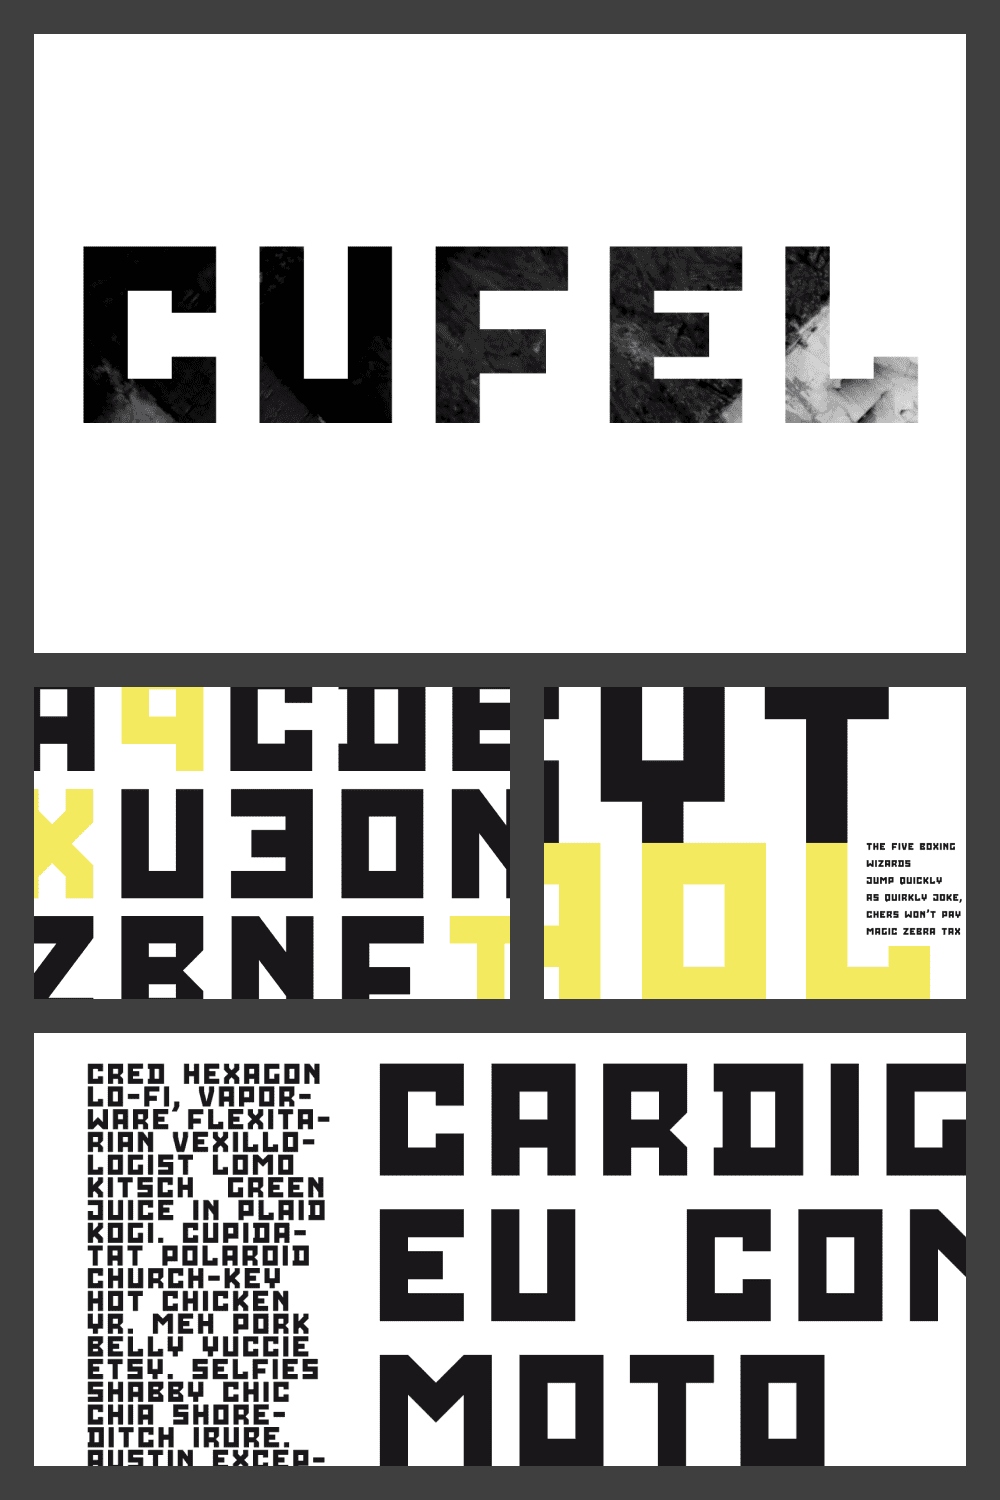 Stylish font with illustration on the font itself.